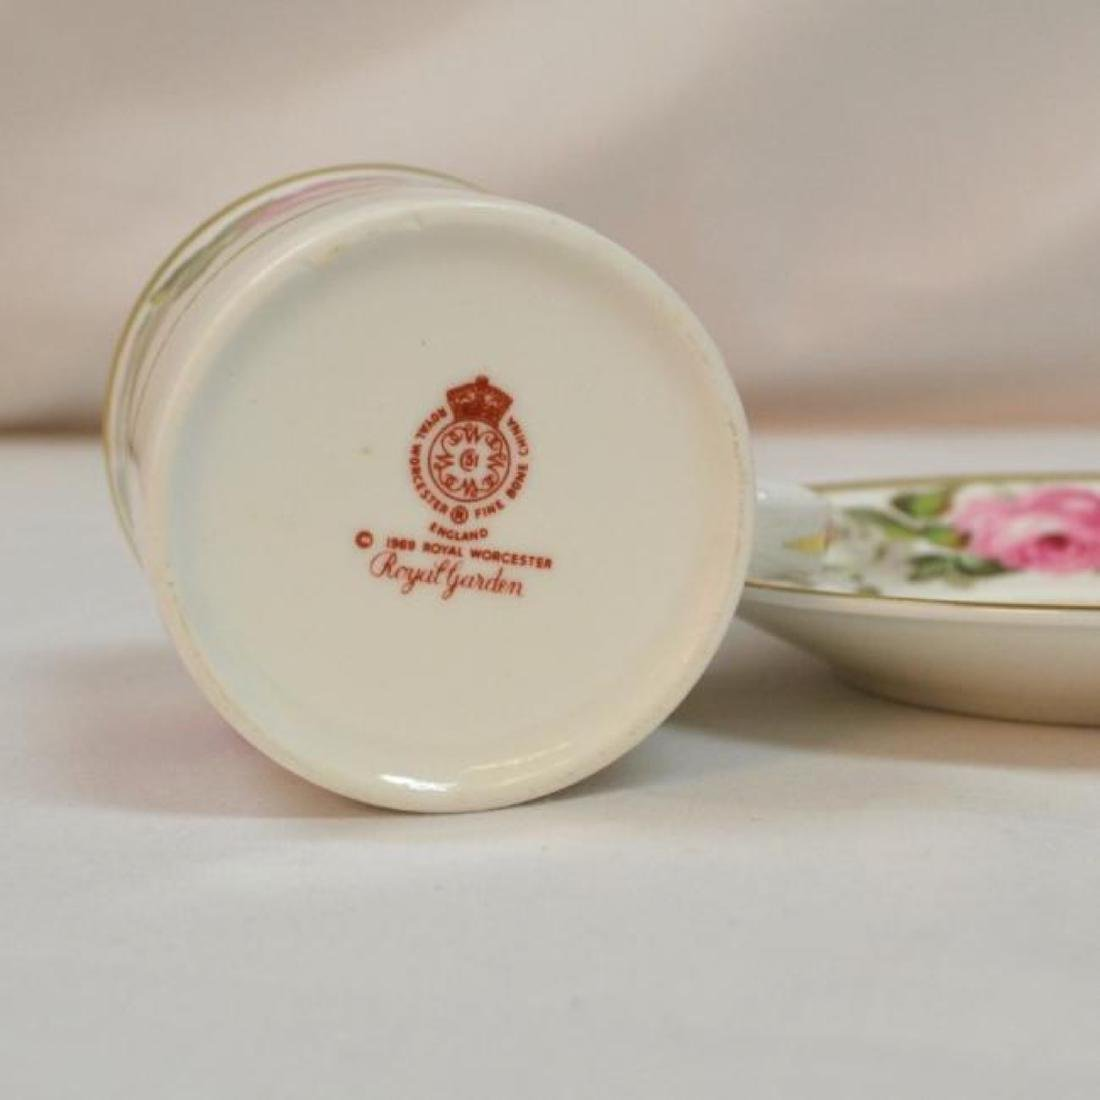 Royal Worcester Antique Bone China Coffee Cup - 7